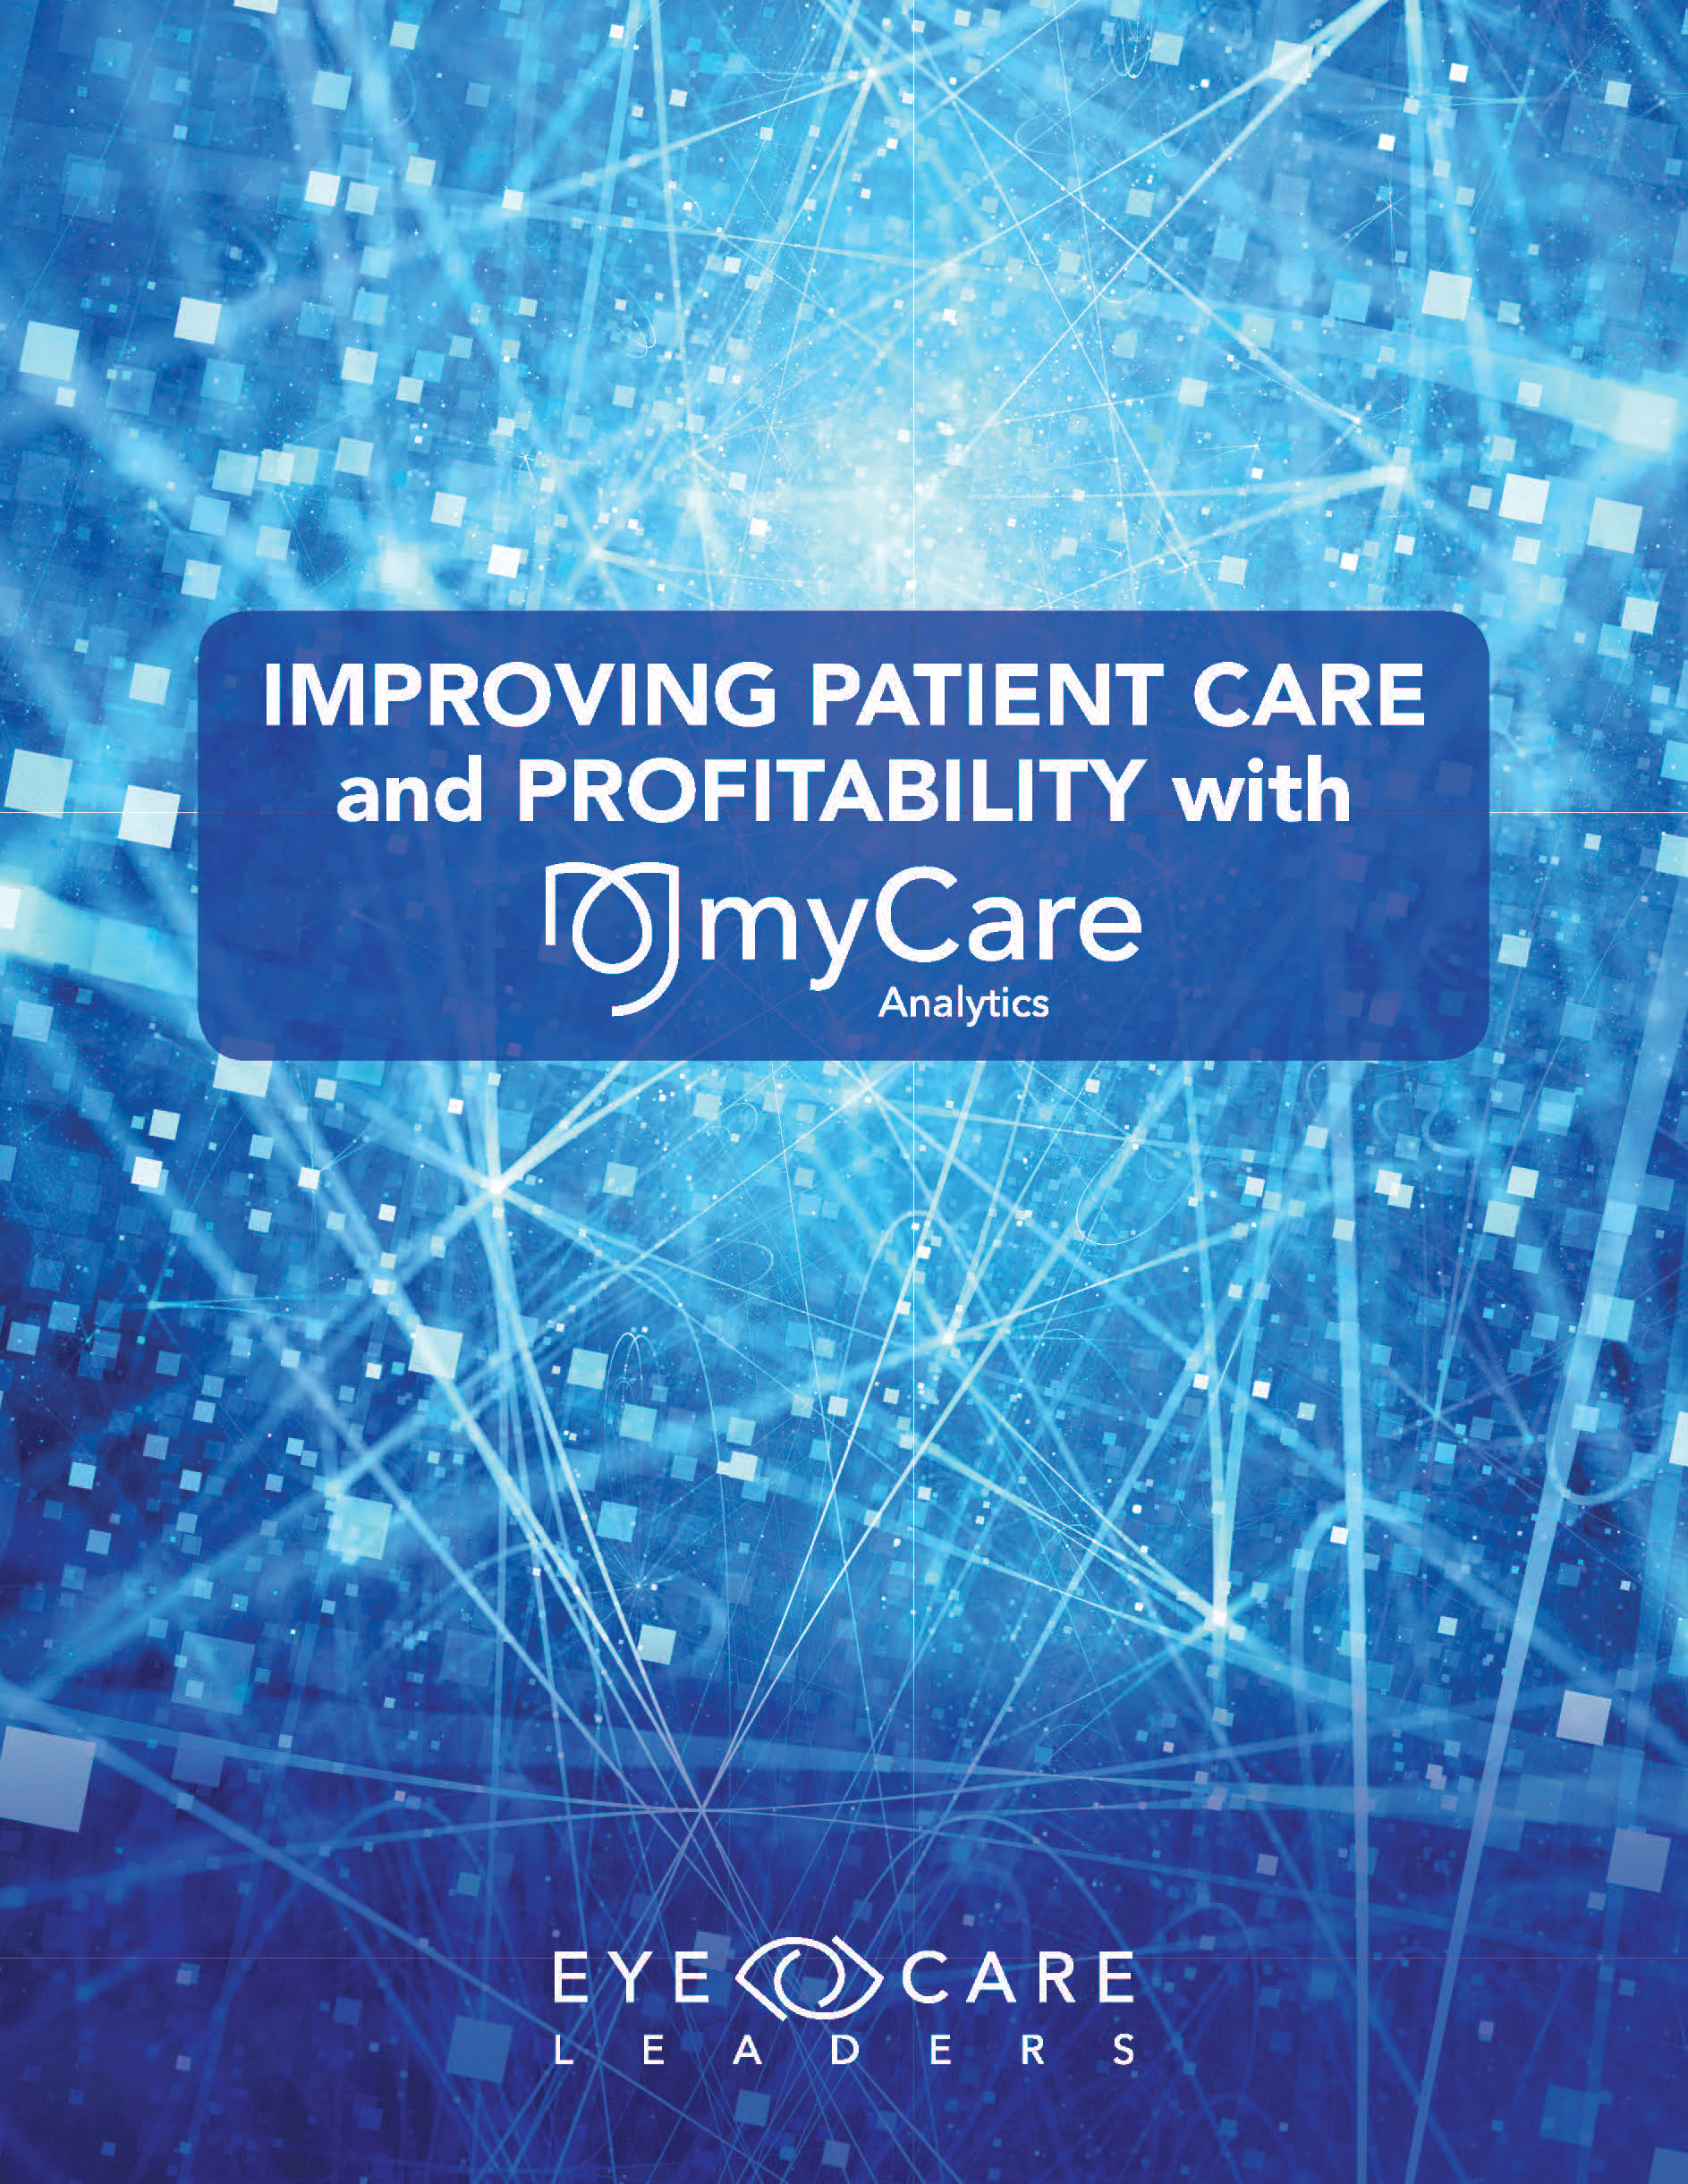 improve patient care with eye care leaders